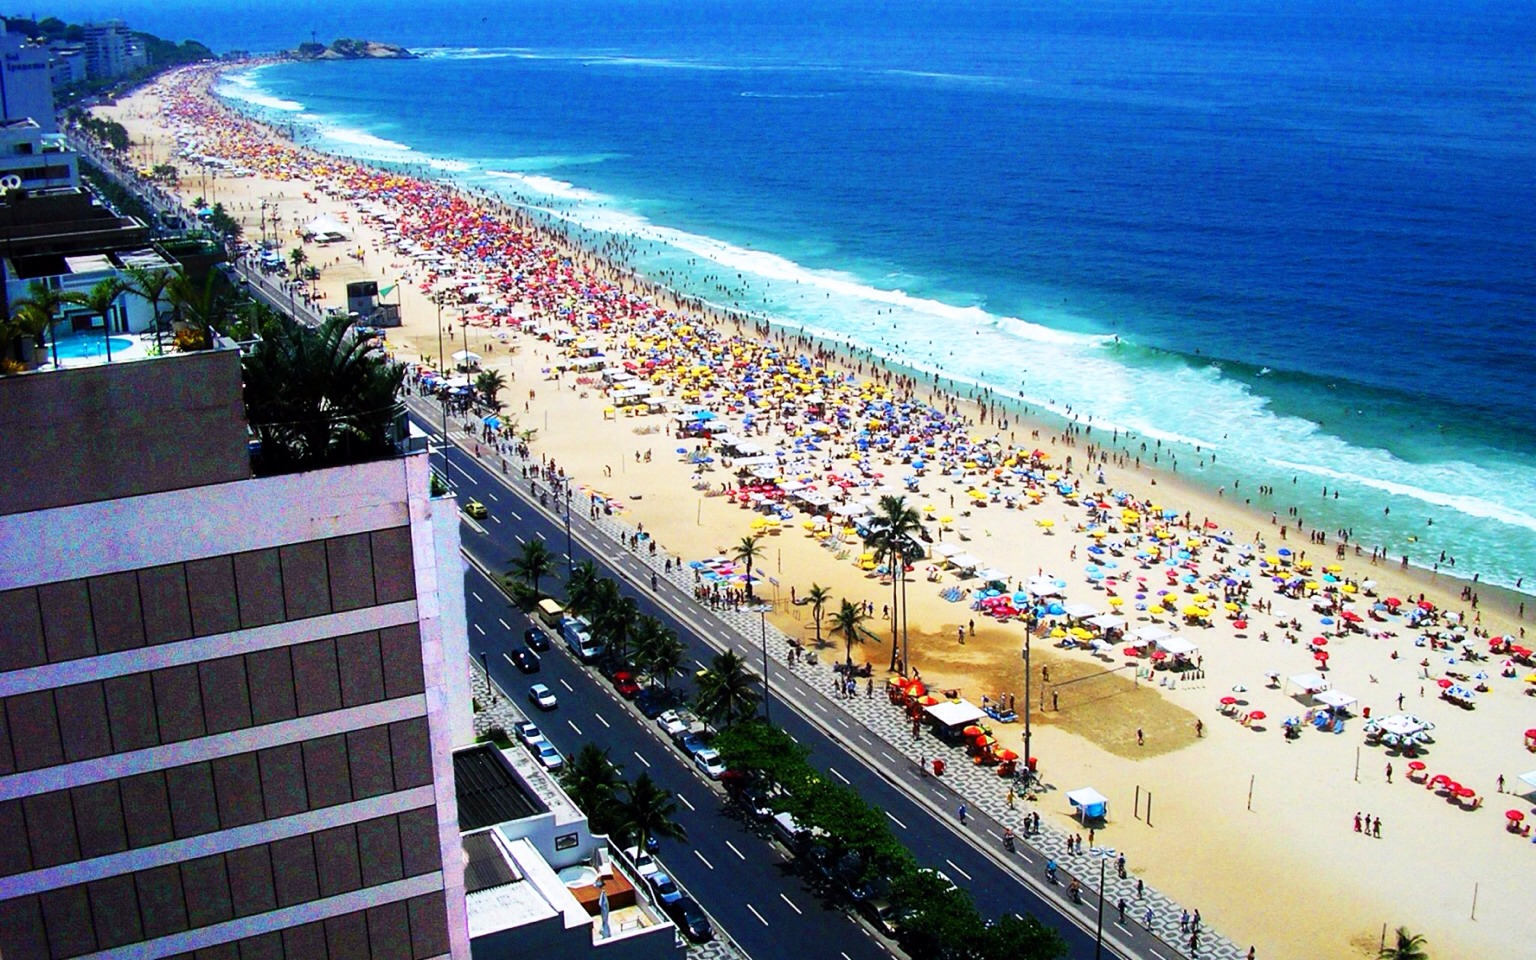 ✨Copacabana Beach Situated in Rio de Janeiro. It has 4 km of spectacular white sand that attracts millions of tourists for its natural beauty. Copacabana is a relative cheap beach with sociable and friendly locals that offer a very pleasant atmosphere.